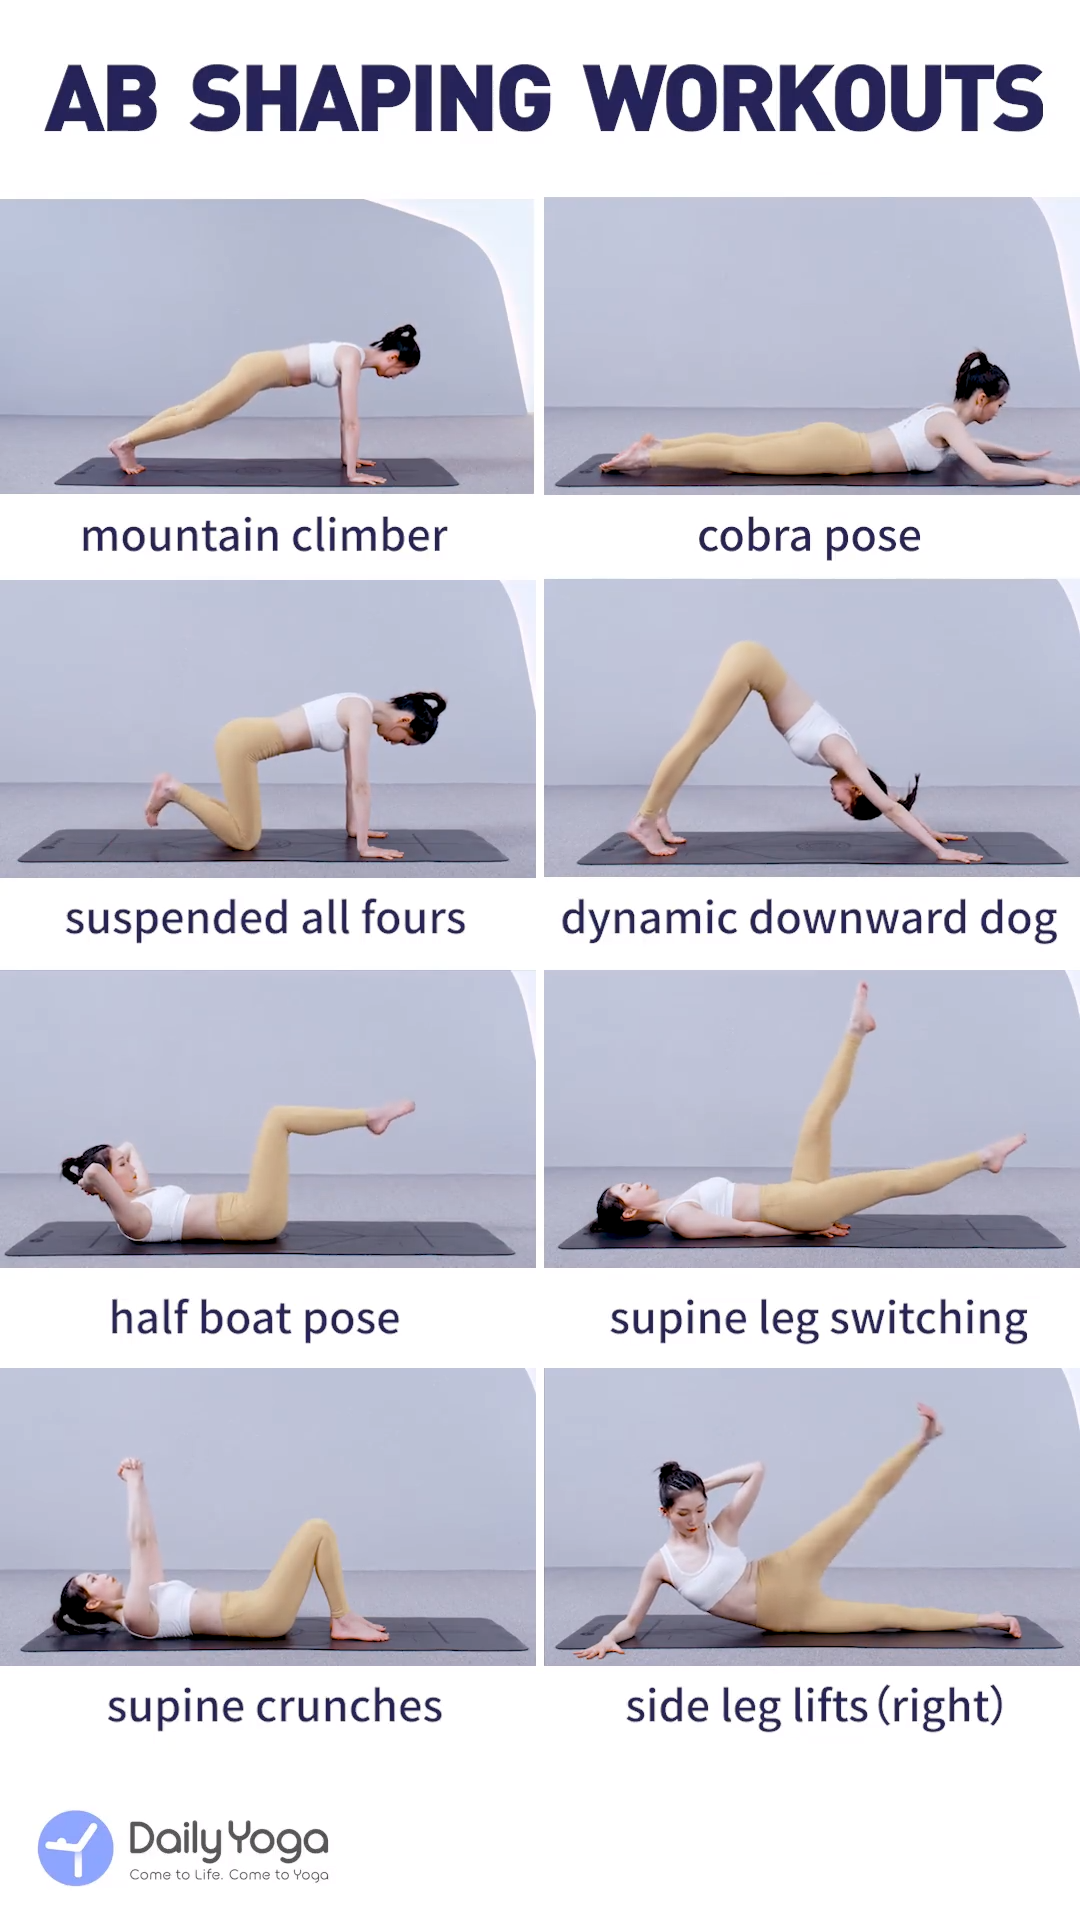 DailyYogaApp| AB Shaping Workouts -  Fire up your core, build strength, and firm abs with these yoga...